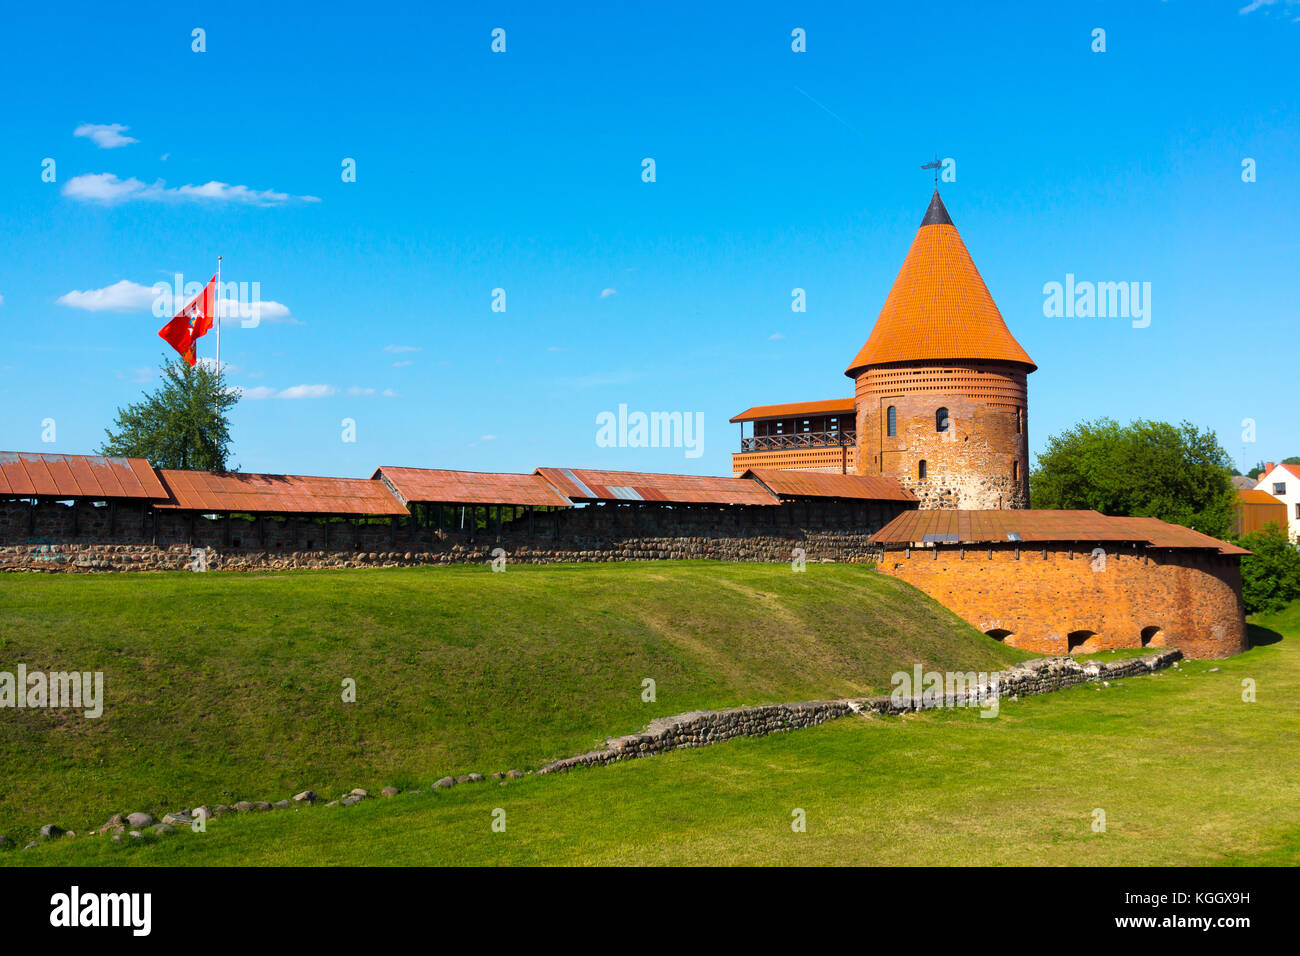 The medieval castle in Kaunas - Stock Image